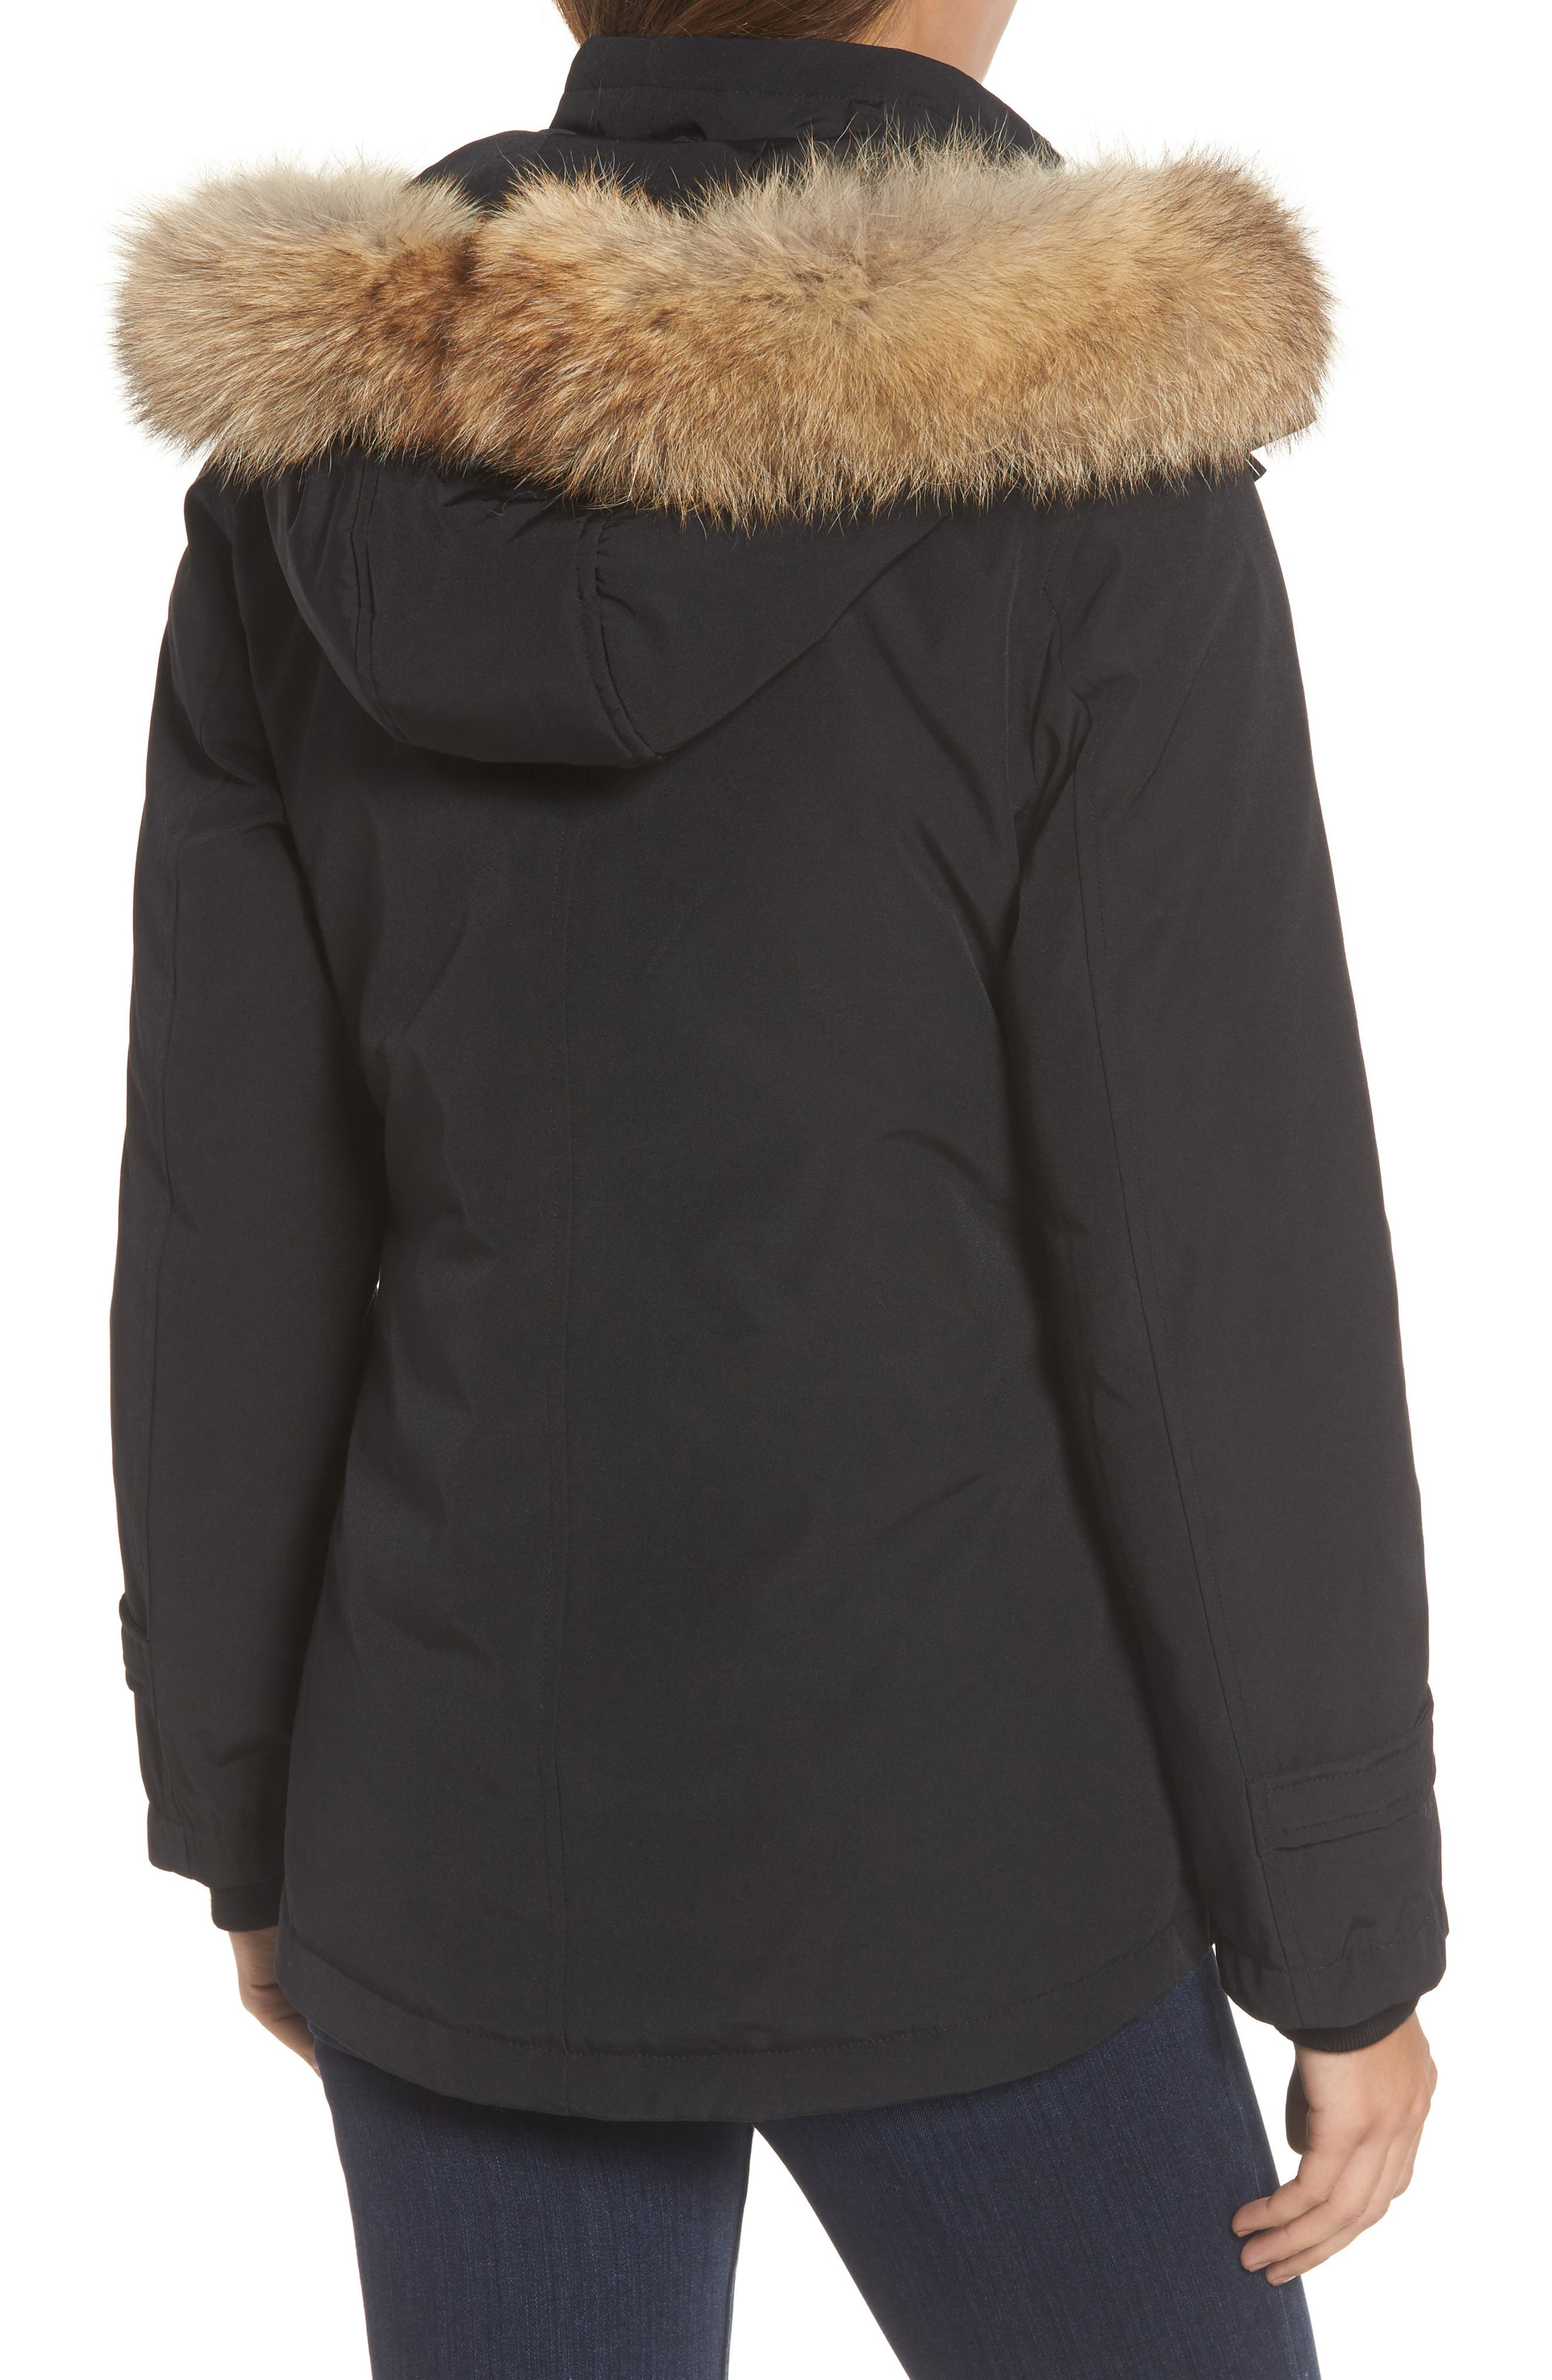 Bachelor Water Repellent Hooded Down Parka with Genuine Coyote Fur Trim,                             Alternate thumbnail 5, color,